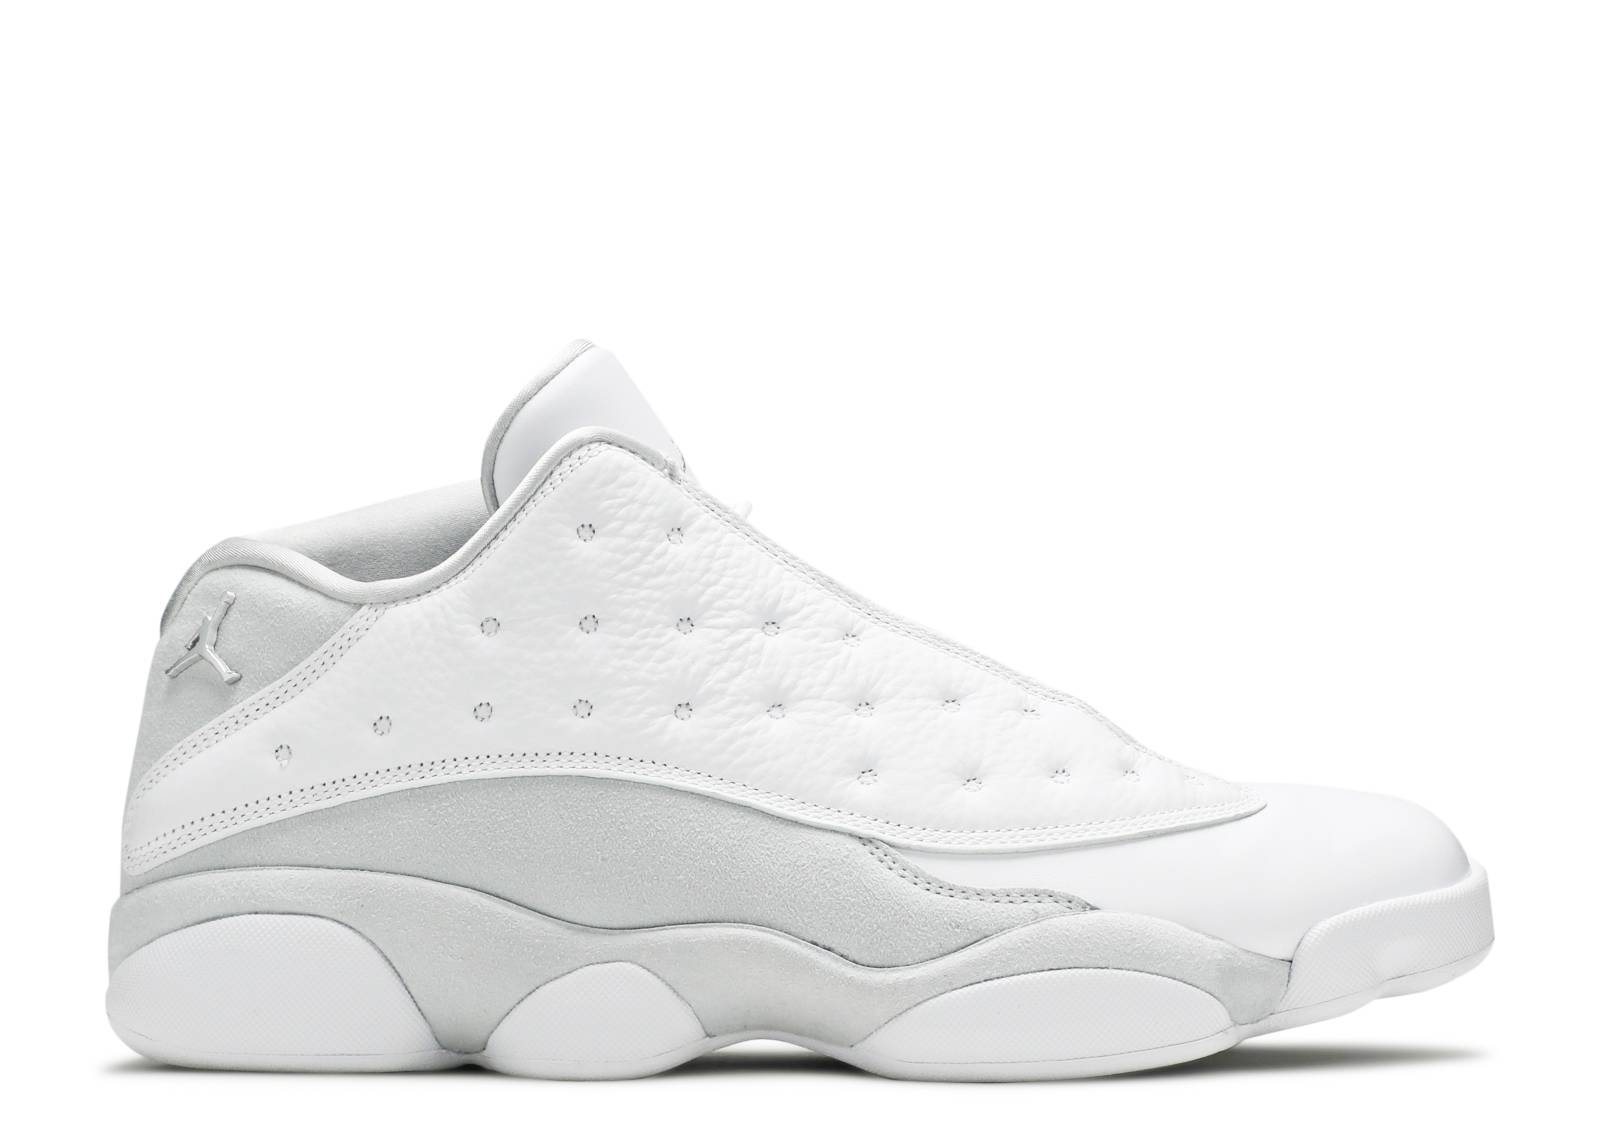 new arrival 7f577 de051 air jordan 13 retro low